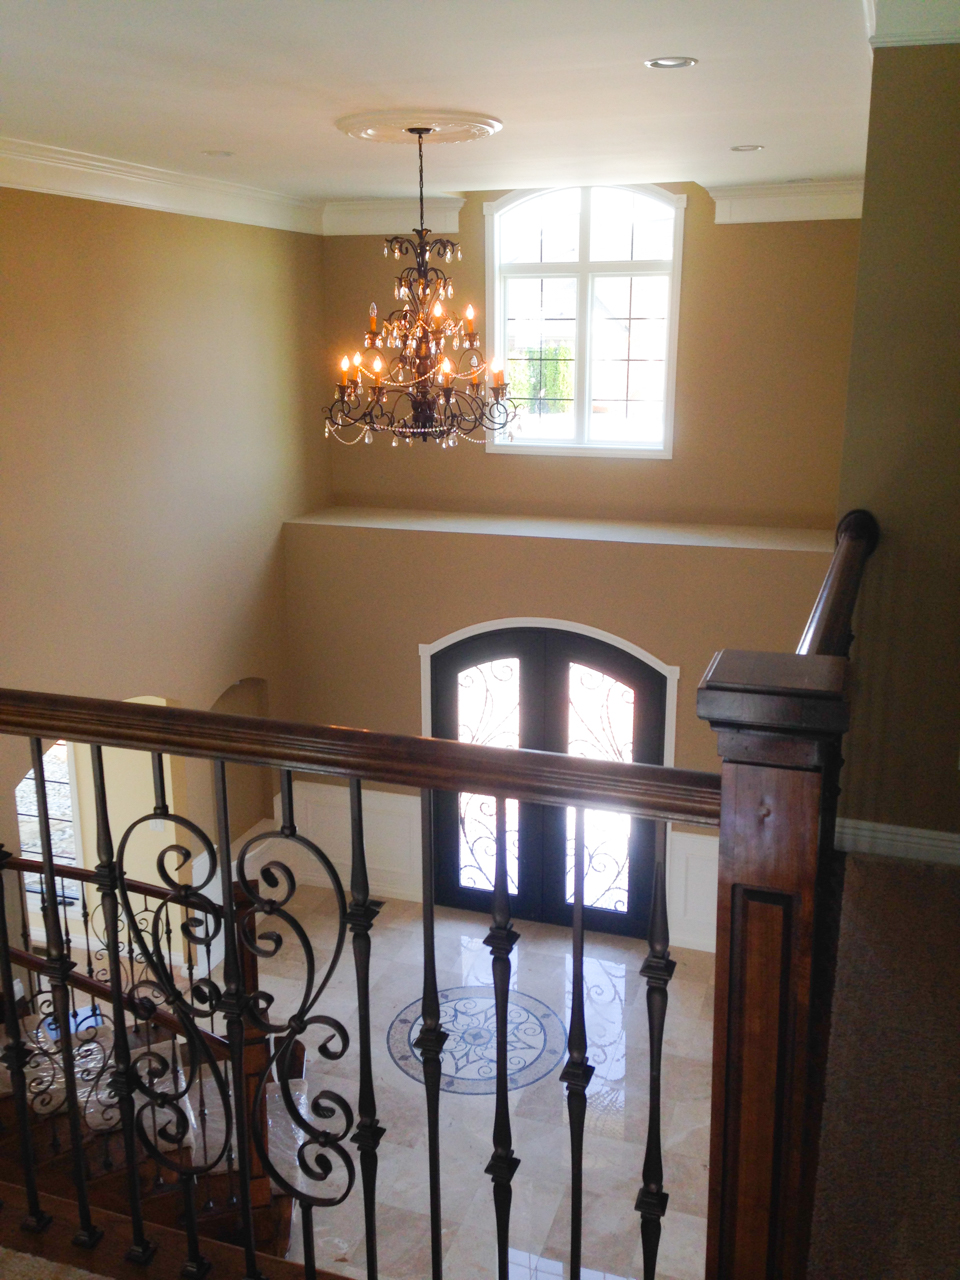 Building relationships one custom home at a time. General Contracting in the Fenton, South Lyon, Novi, Canton, Clarkston, Orion, and other Southwest Michigan areas custom foyer